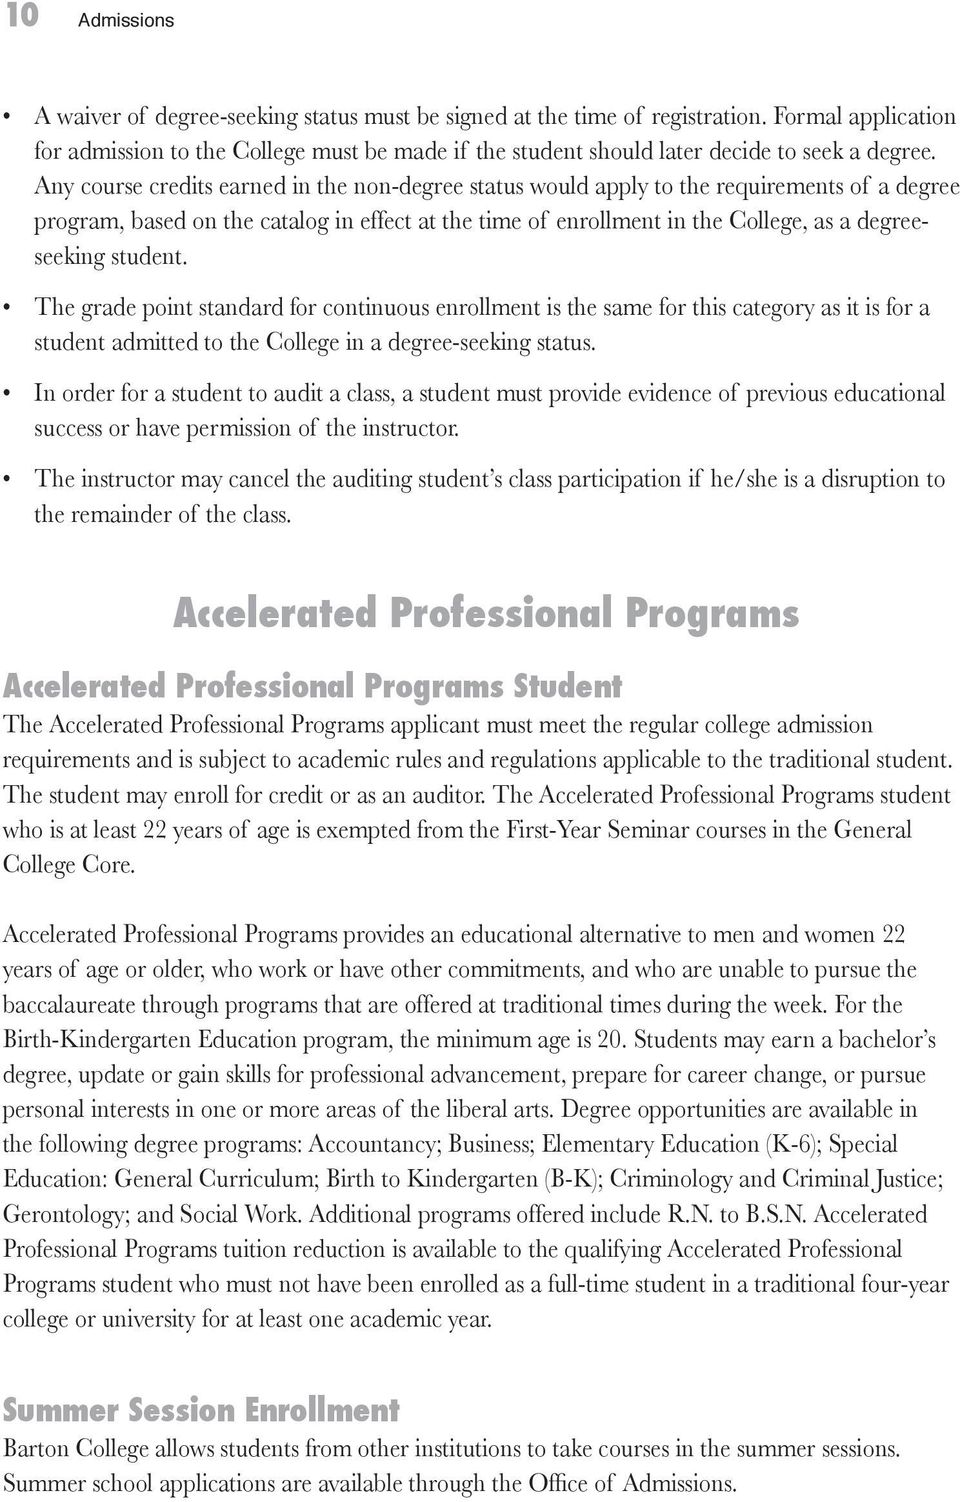 Any course credits earned in the non-degree status would apply to the requirements of a degree program, based on the catalog in effect at the time of enrollment in the College, as a degreeseeking